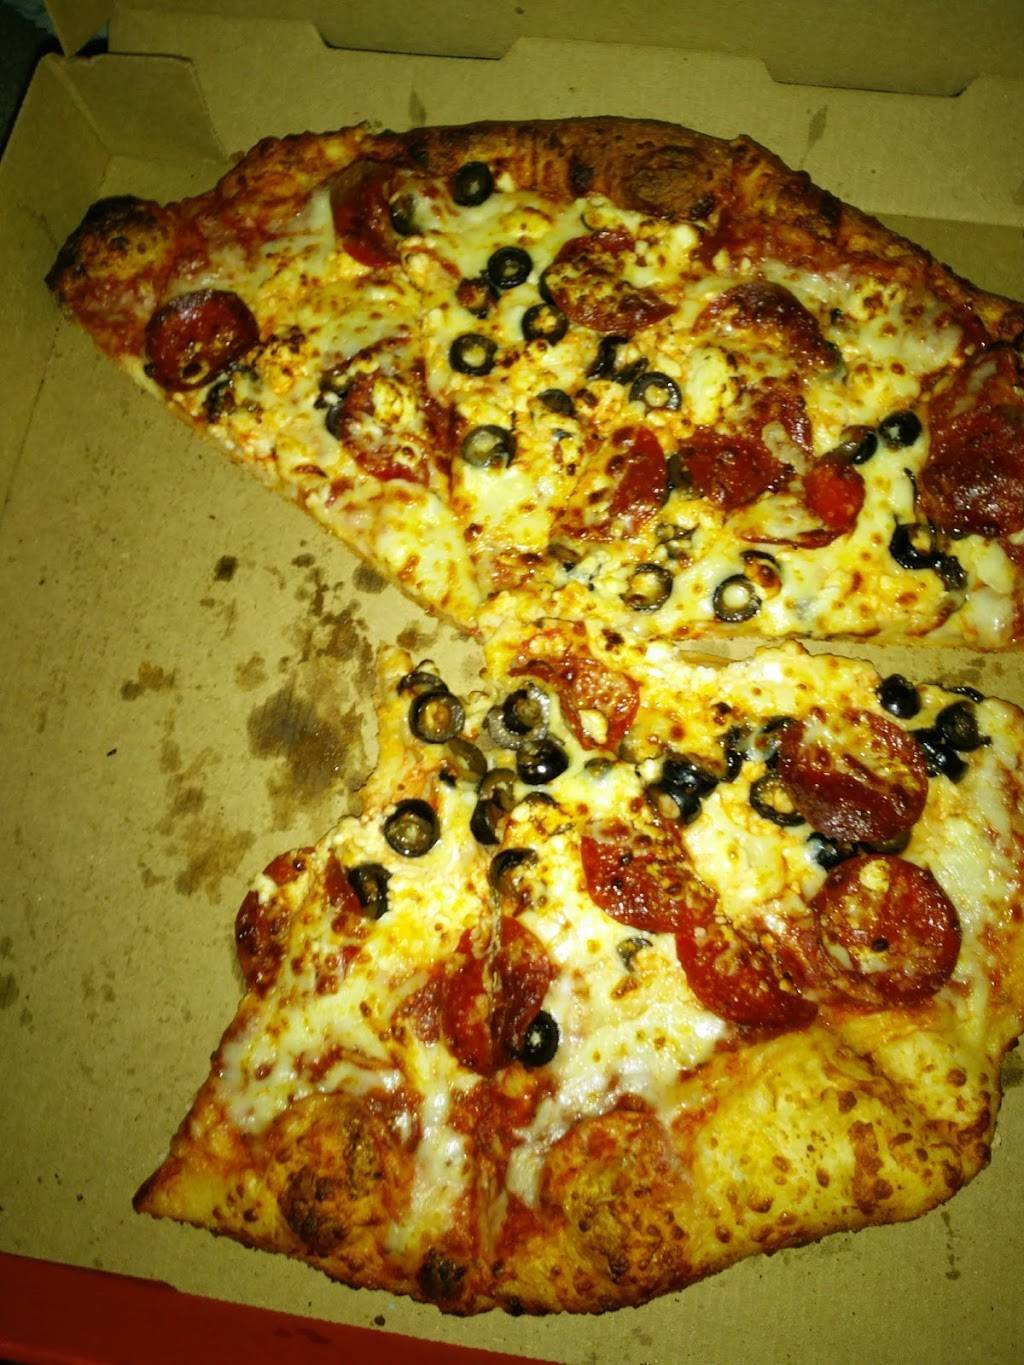 Happys Pizza | meal delivery | 16850 Schaefer Hwy, Detroit, MI 48235, USA | 3138625555 OR +1 313-862-5555